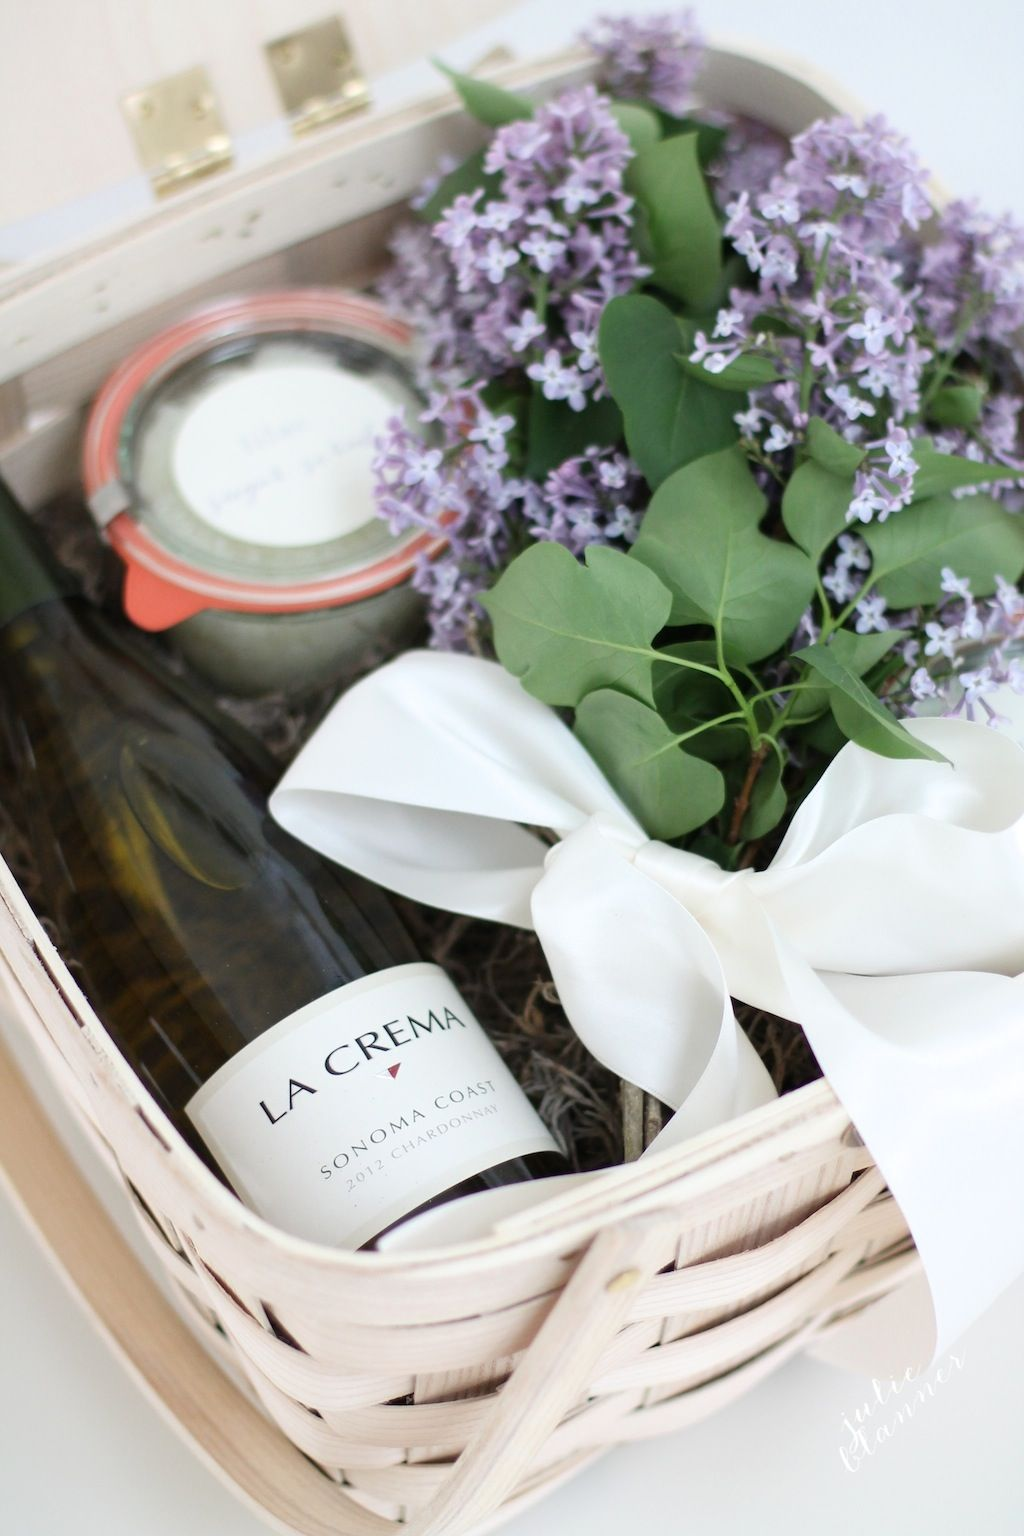 Simples Steps To Ensure You Re A Gracious Houseguest Bring Small Gift Image And More Ideas Via Julie Blanner